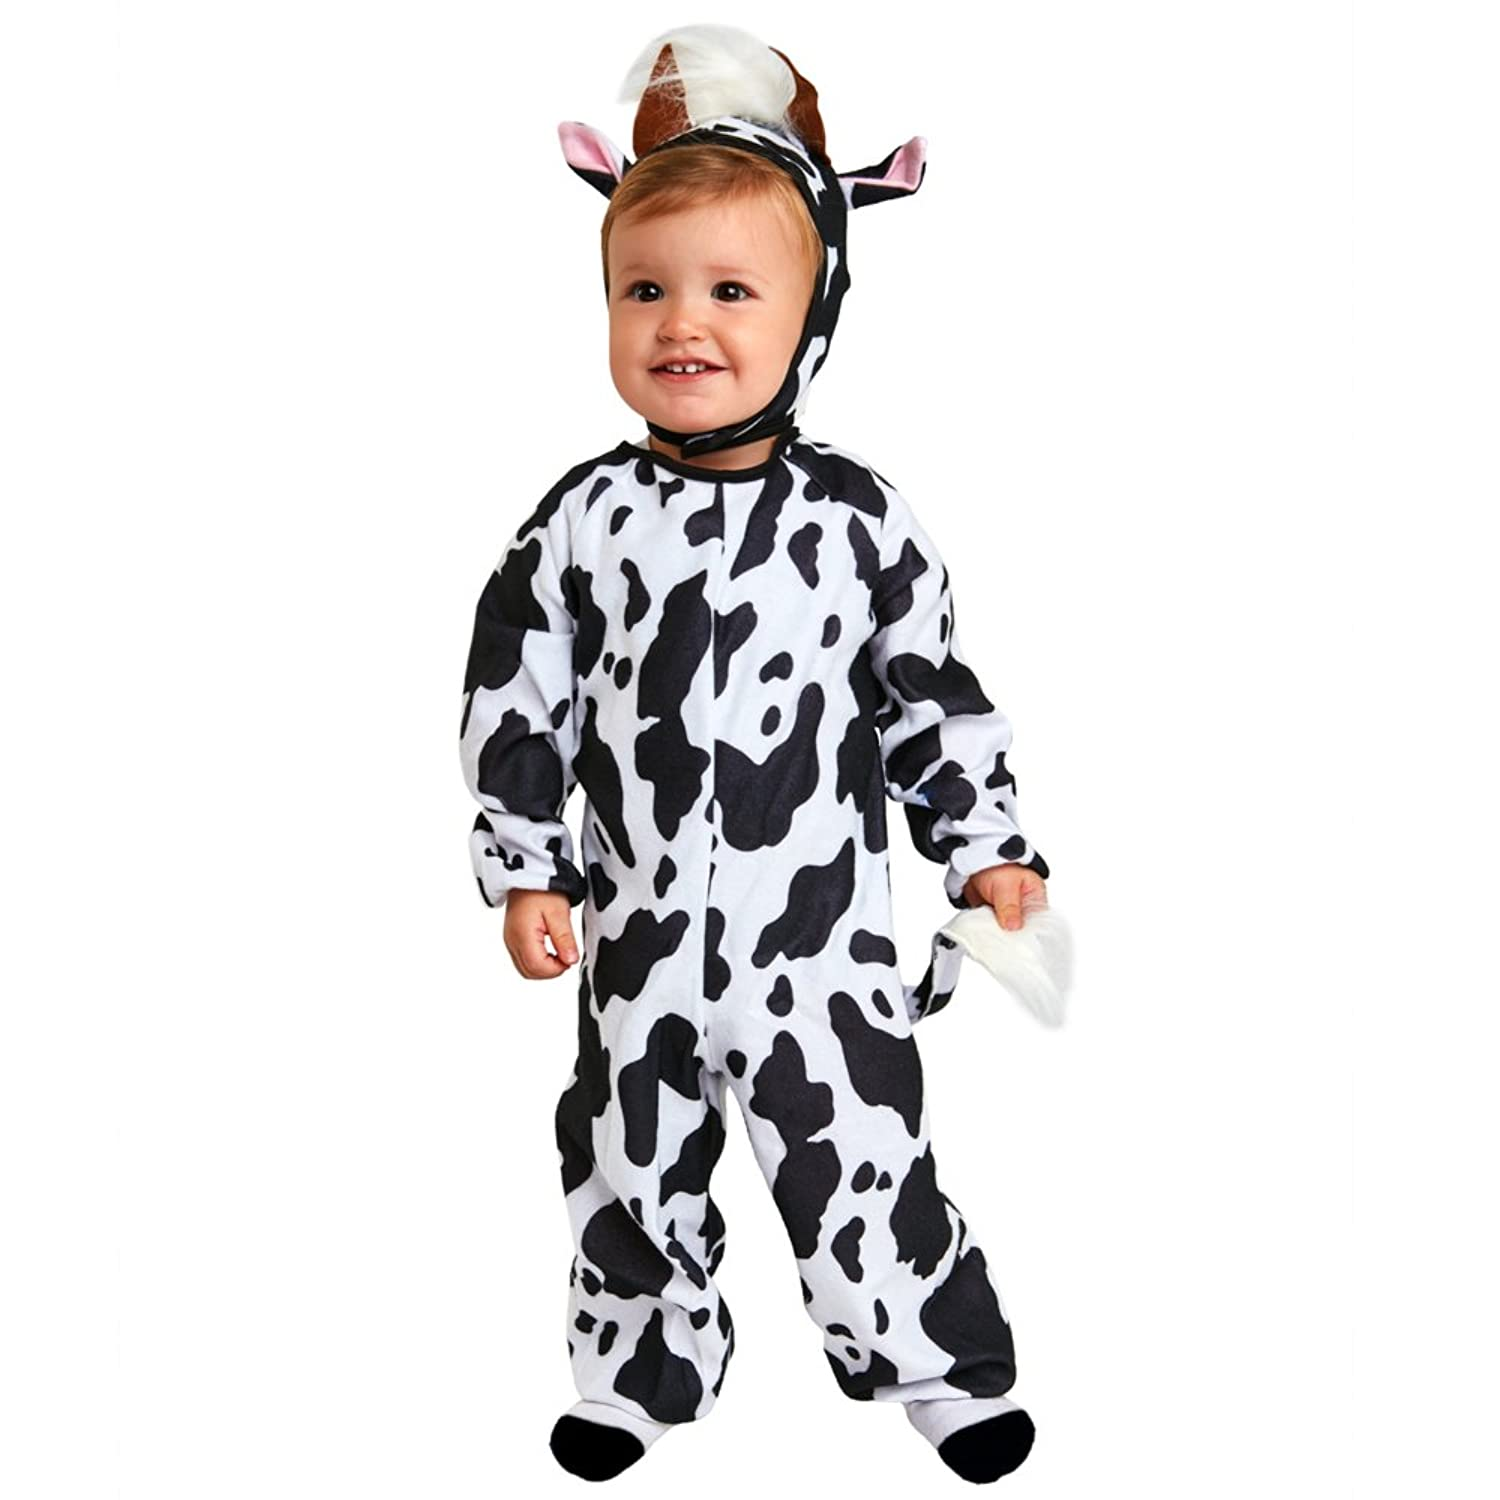 Toddler Cow Costume (Size: 24 Months)